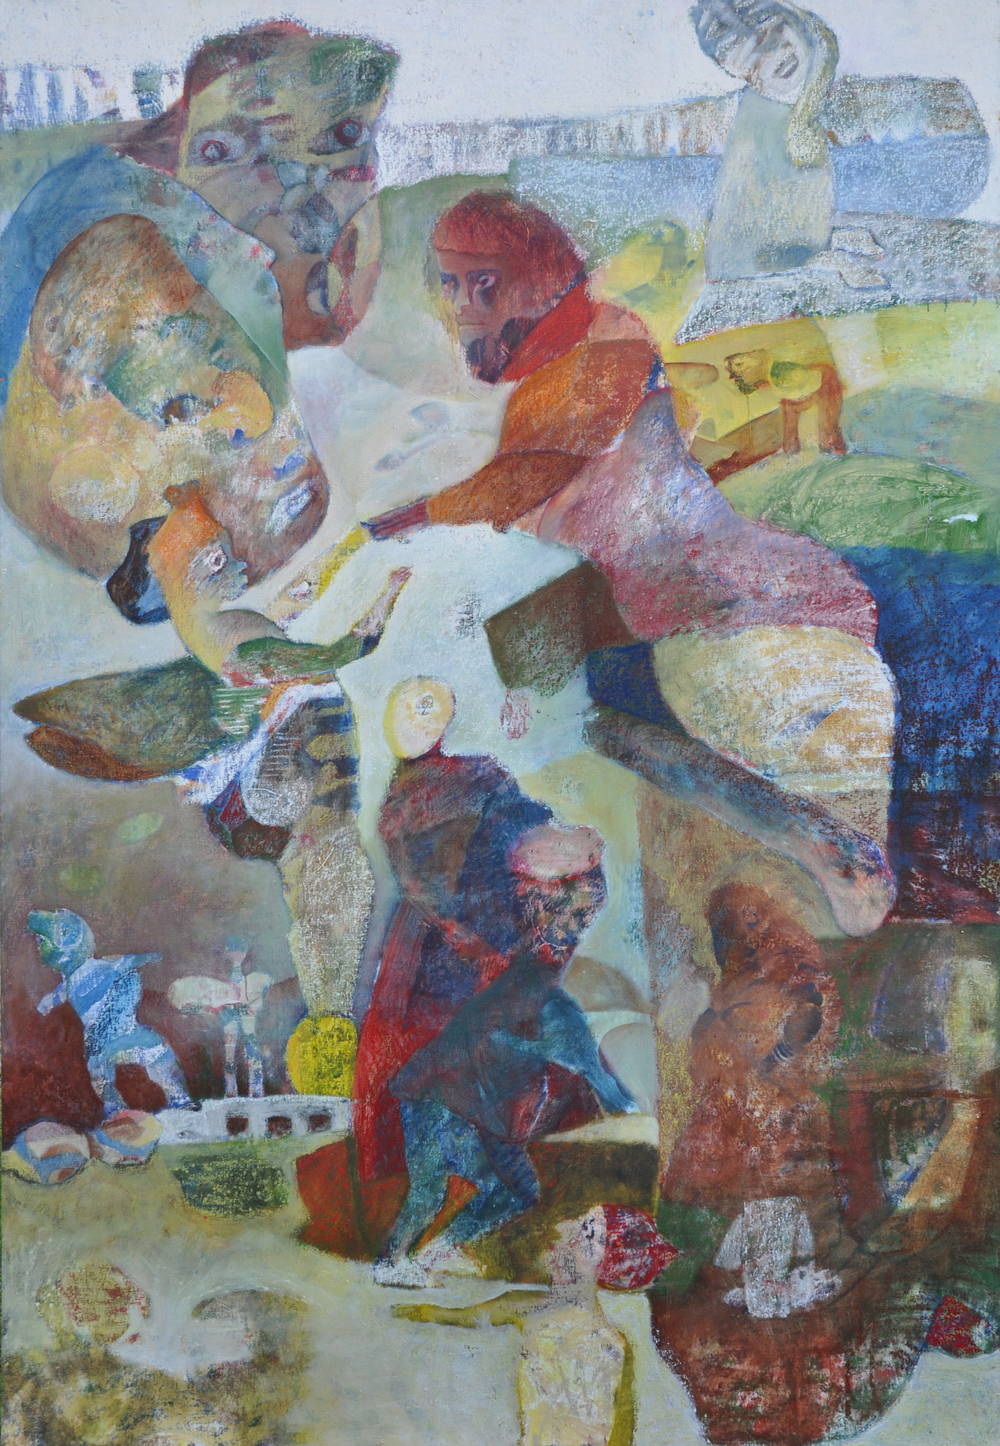 Budbringeren, oil on canvas, 239x153cm